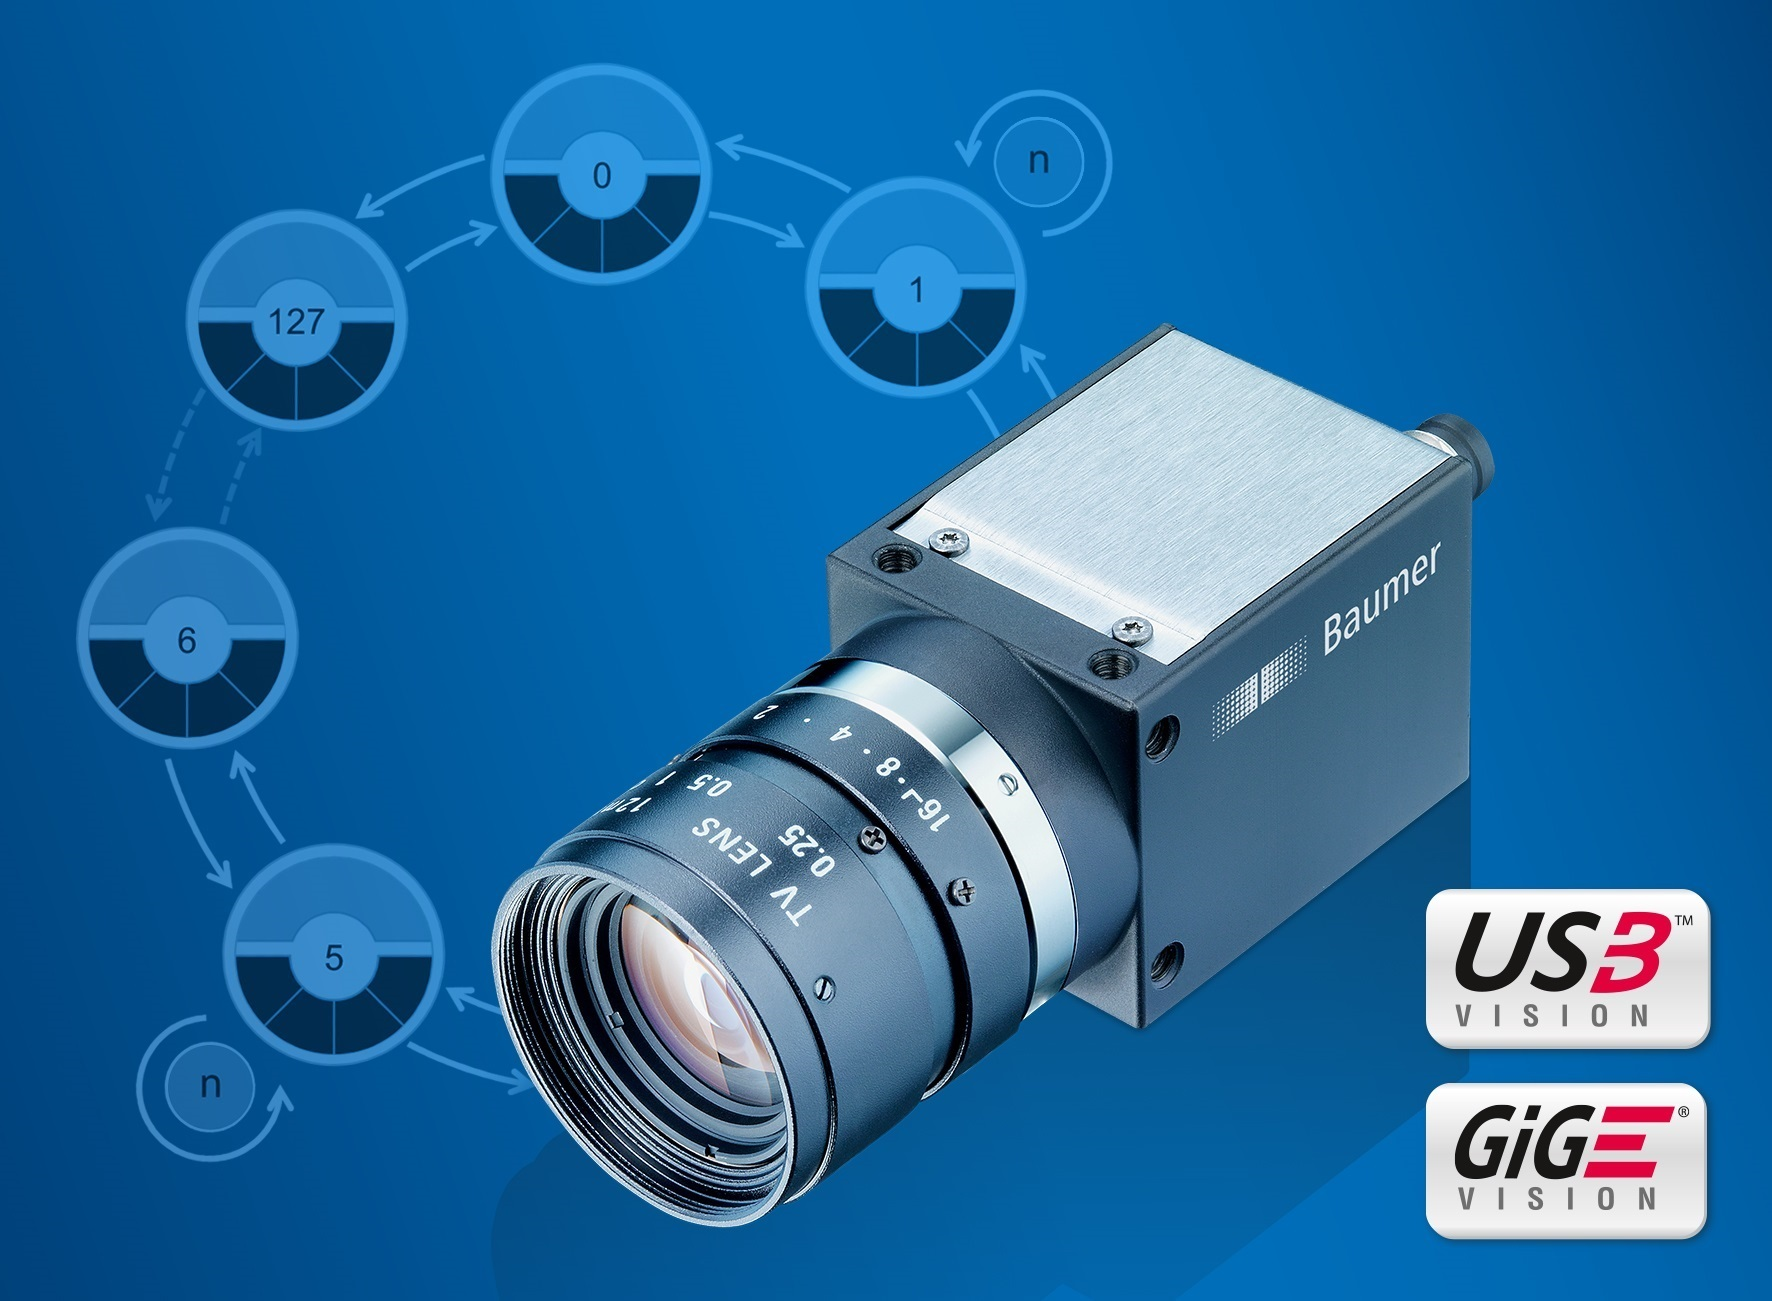 CX-series with up to 12 megapixel and Global Shutter CMOS sensors in compact 29 x 29 mm housing.